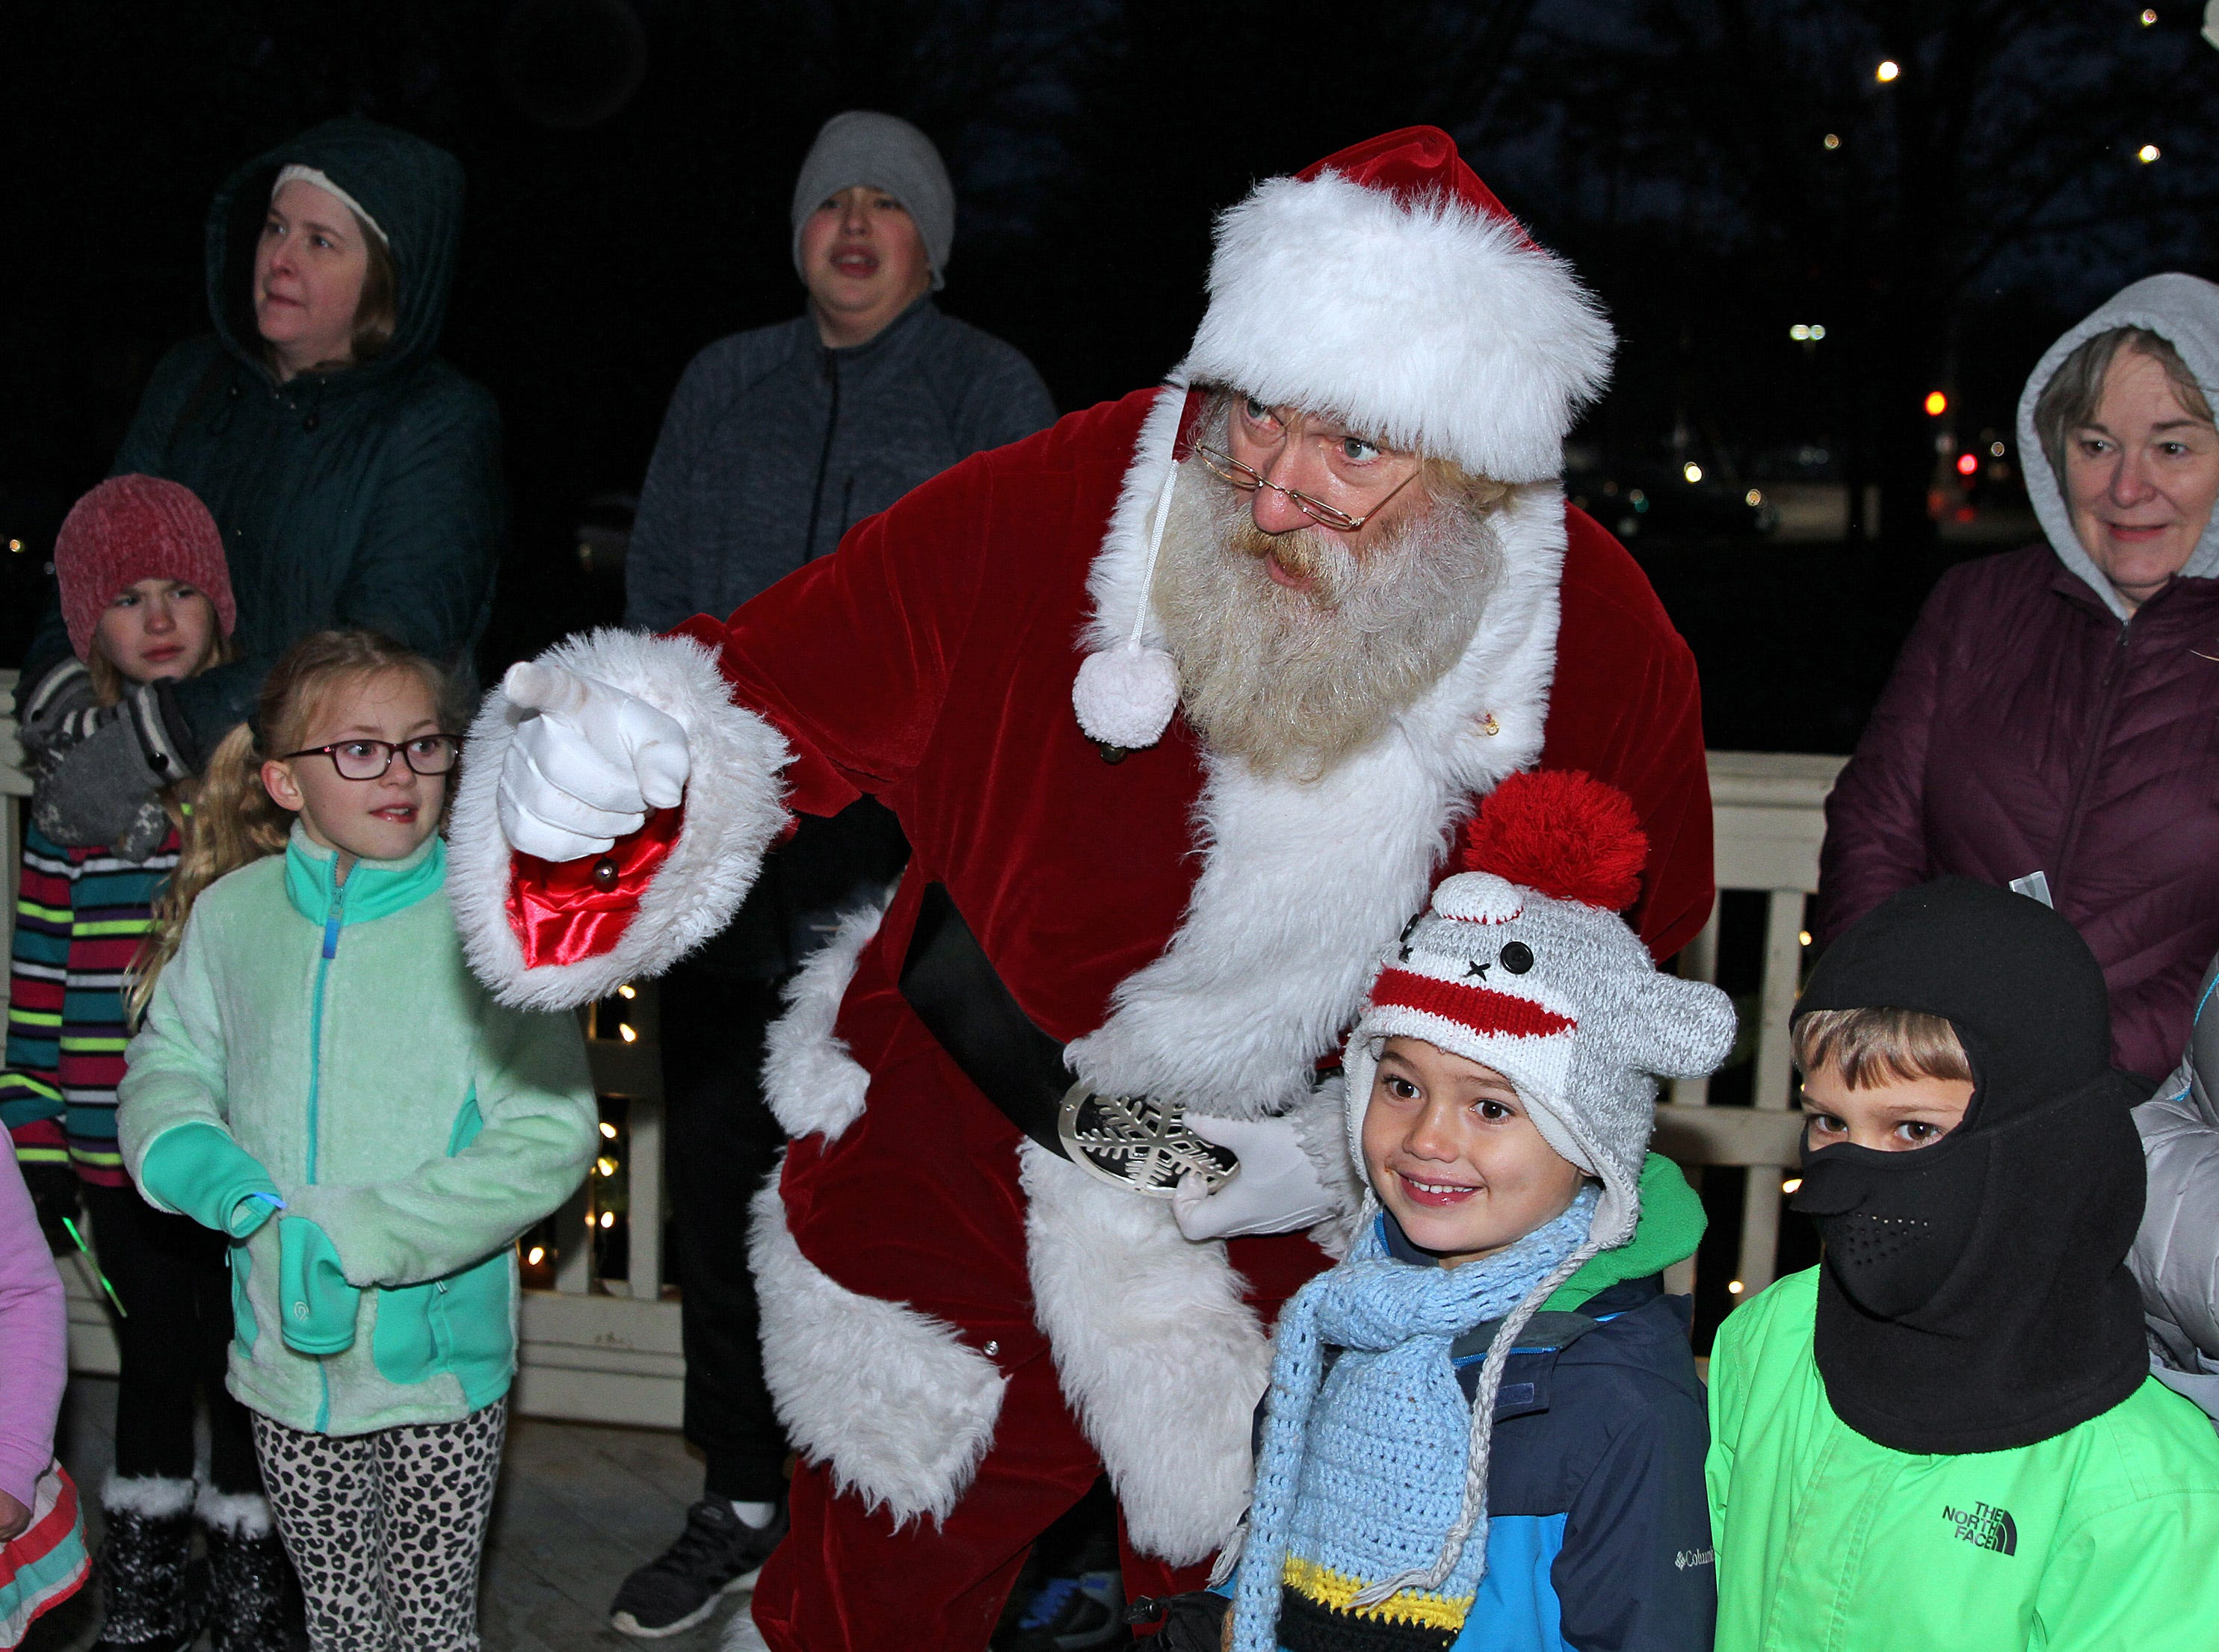 Santa points out the bell ringers to the kids during UCAN's third annual Light Up Urbandale on Sunday, Dec. 2, 2018 at Lions Park in Urbandale. Holiday festivities included a visit from Santa, crafts, goodies, official tree lighting ceremony, live reindeer and entertainment.